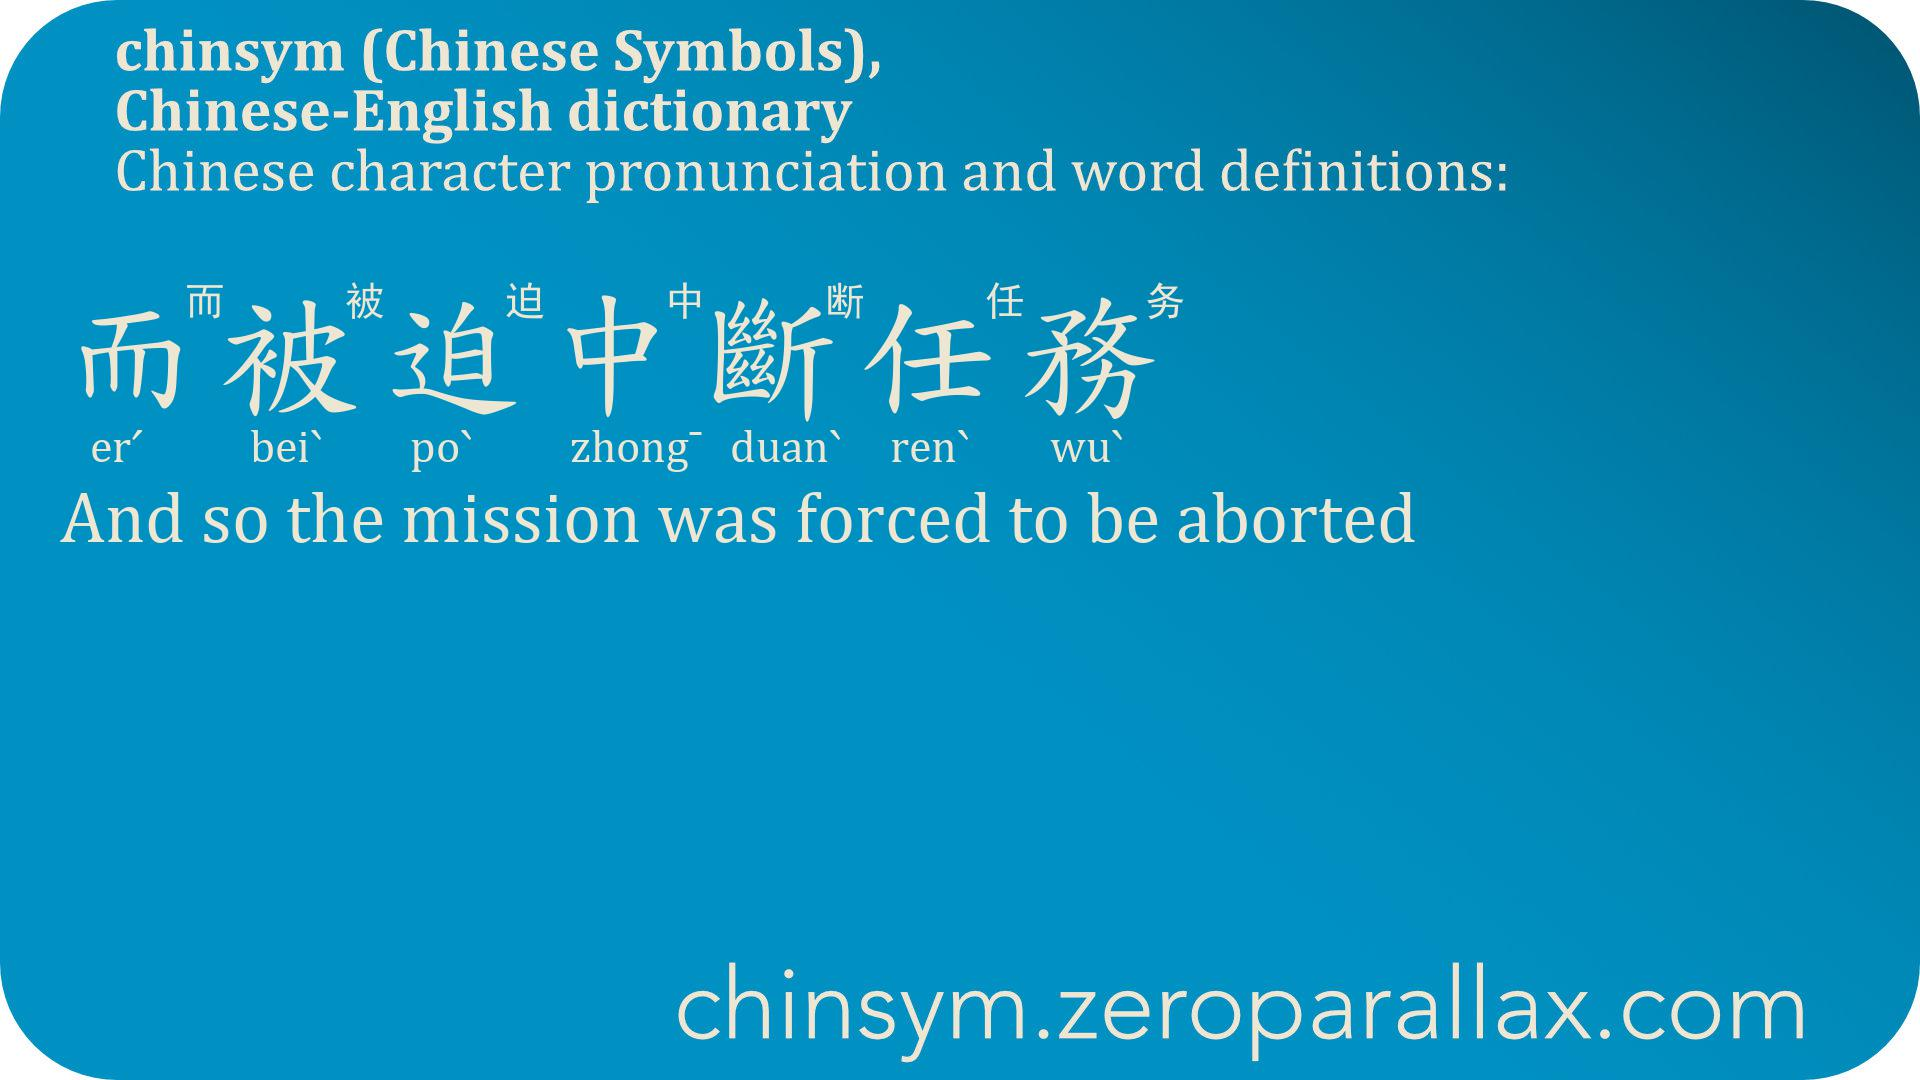 而被迫中斷任務  (erˊ beiˋ poˋ zhong¯ duanˋ renˋ wuˋ) 而被迫中断任务 : And so the mission was forced to be aborted. chinsym.zeroparallax.com